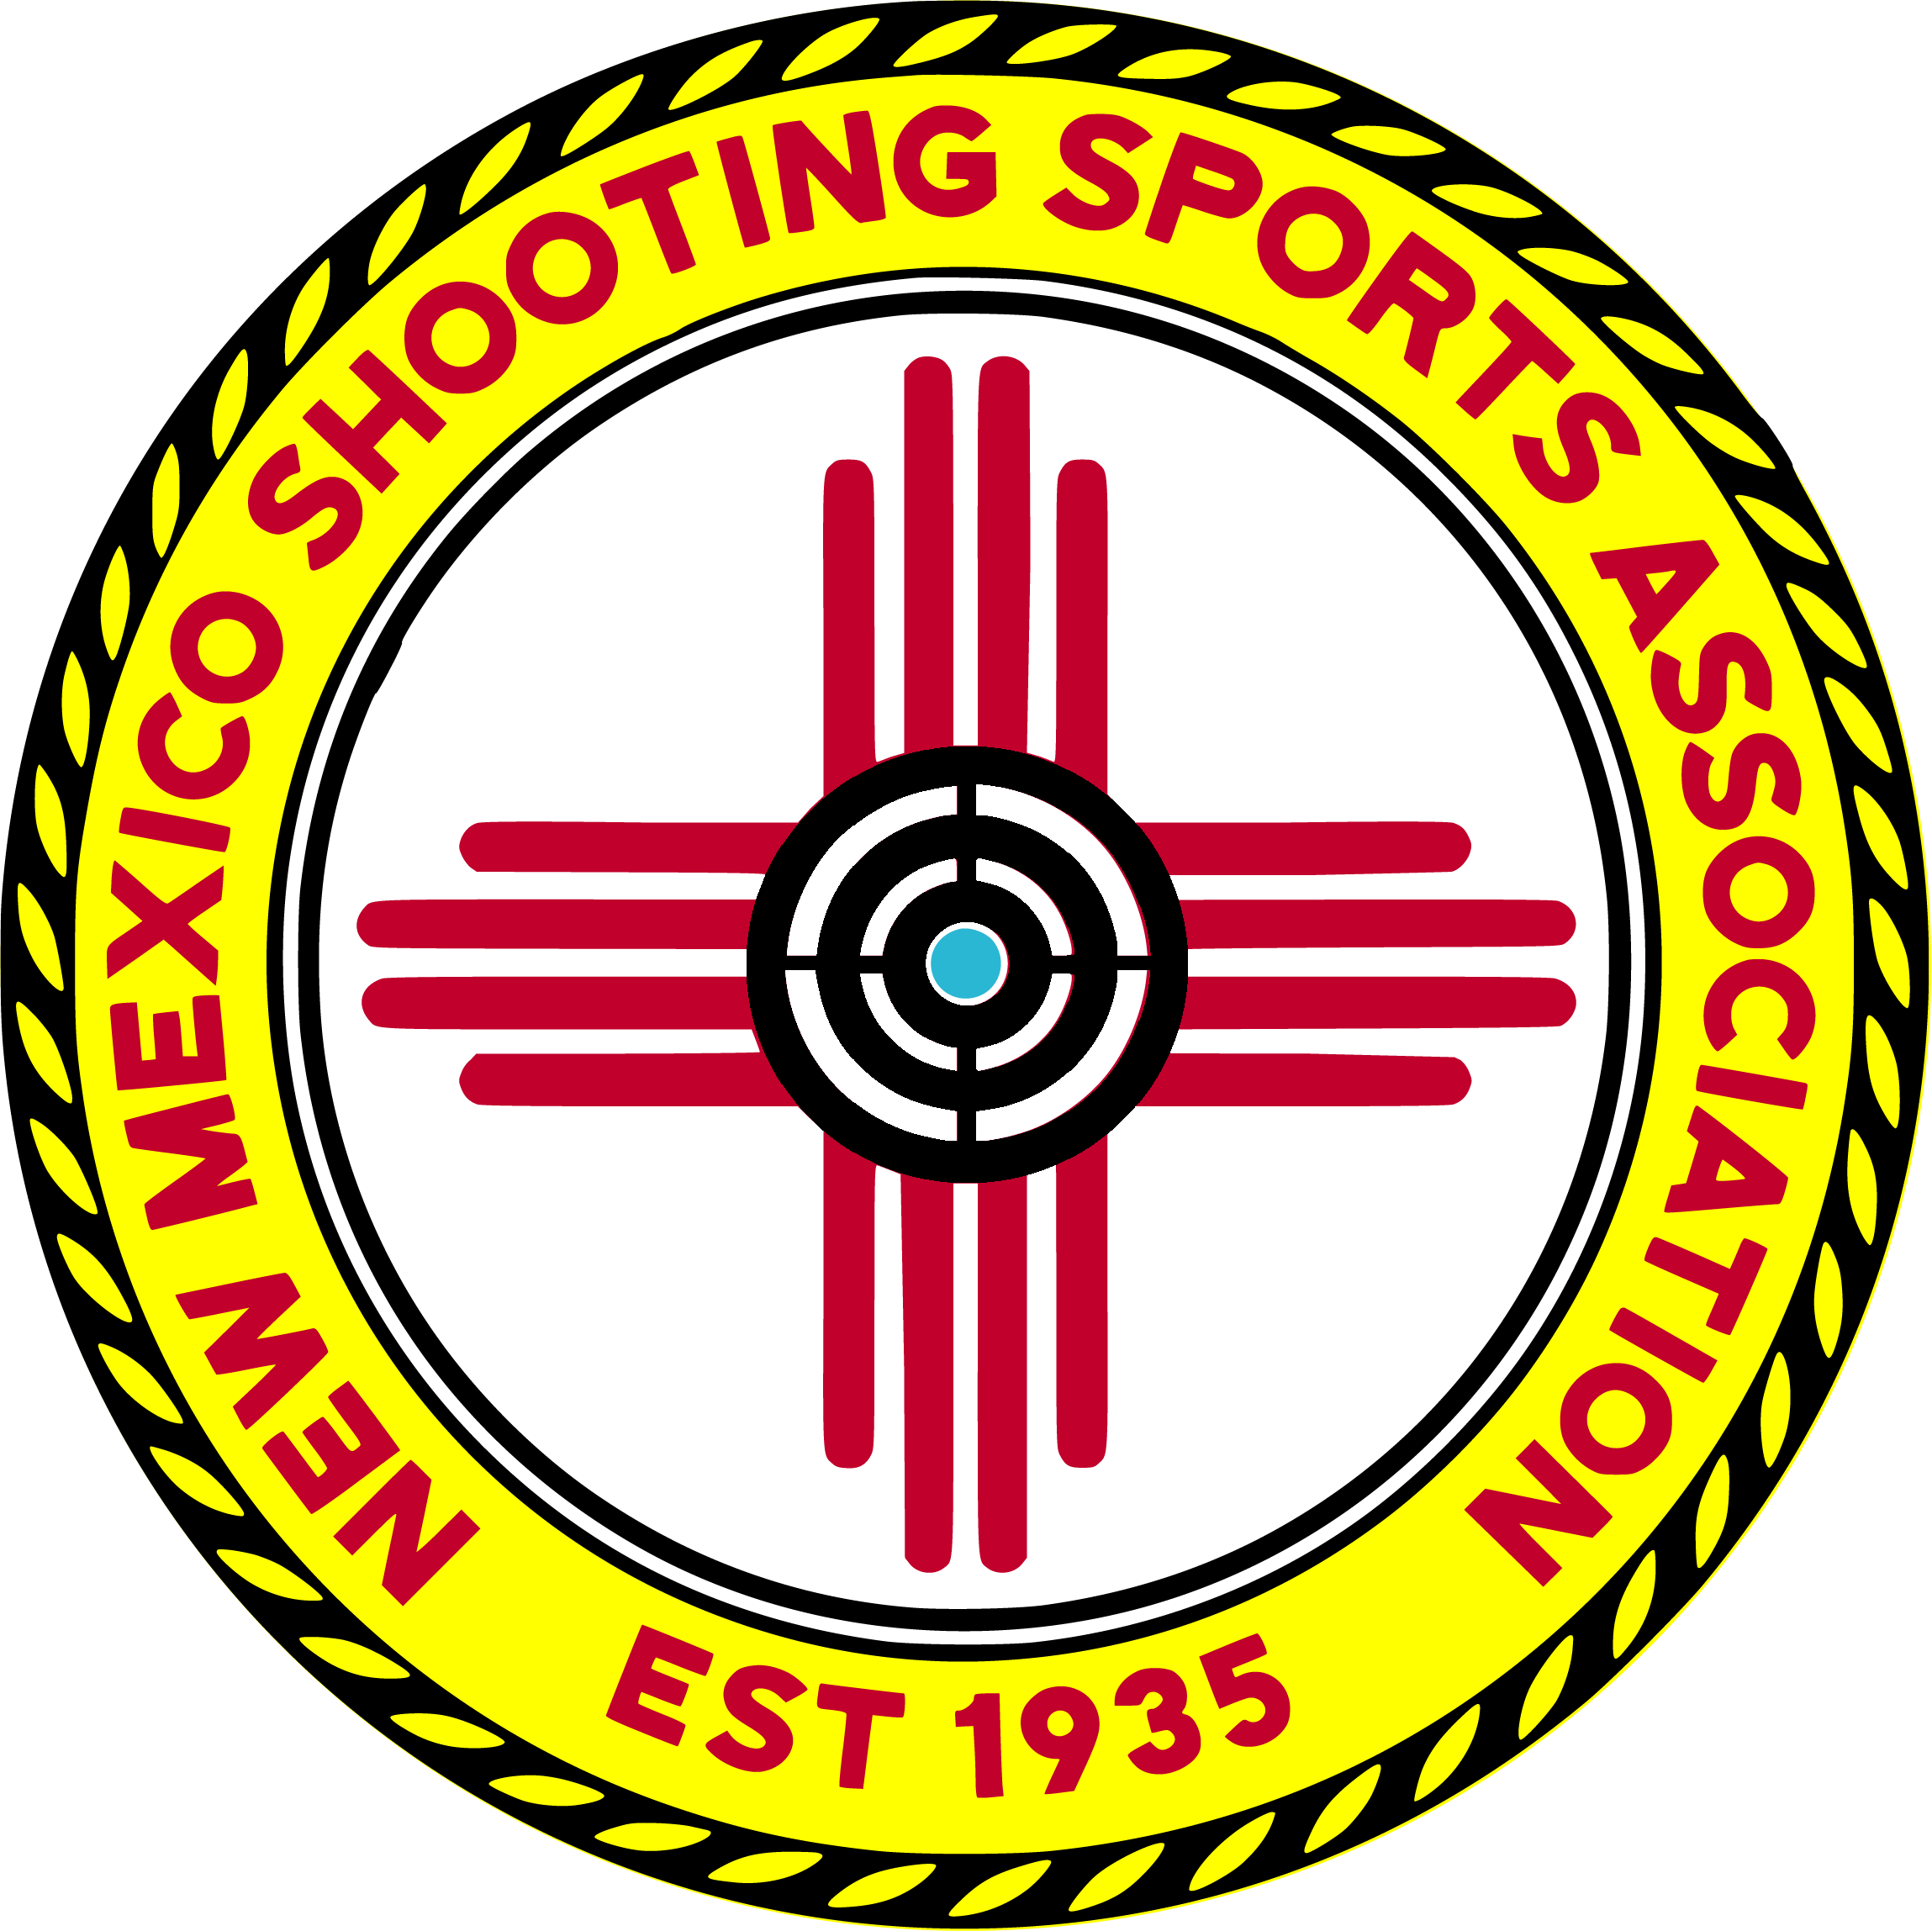 New Mexico Shooting Sports Association